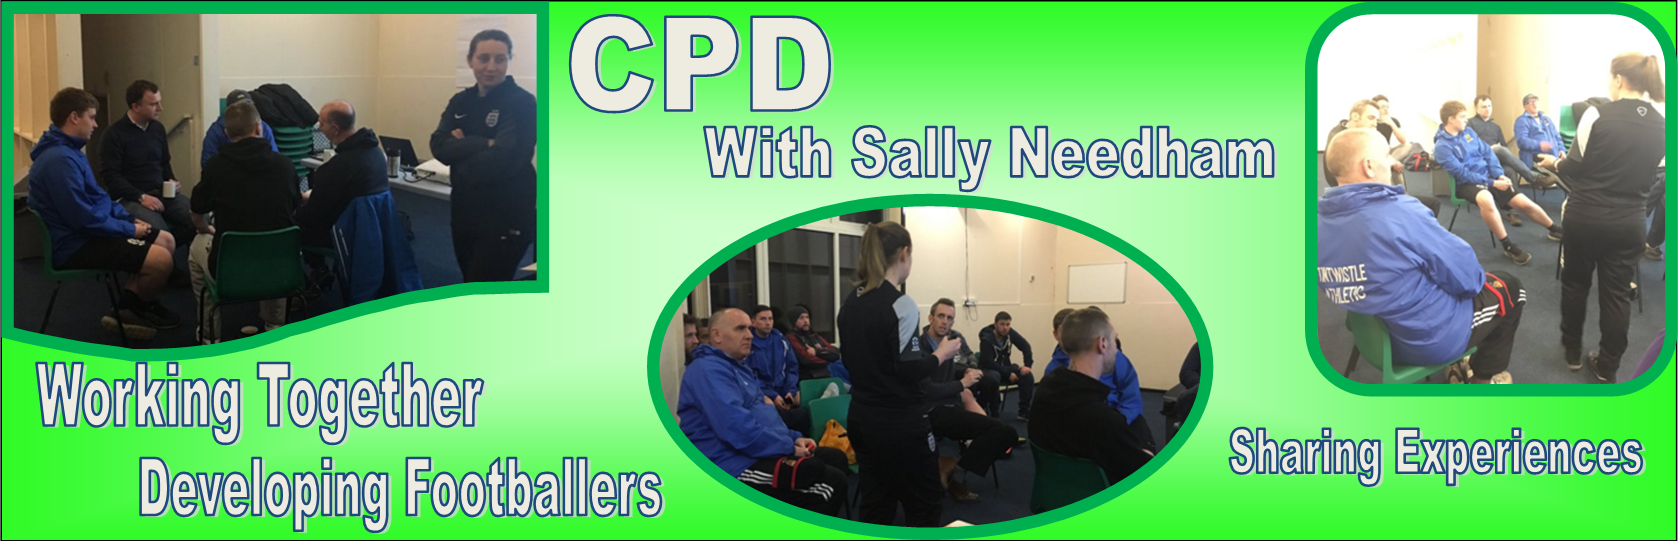 cpd with sally needham march 16